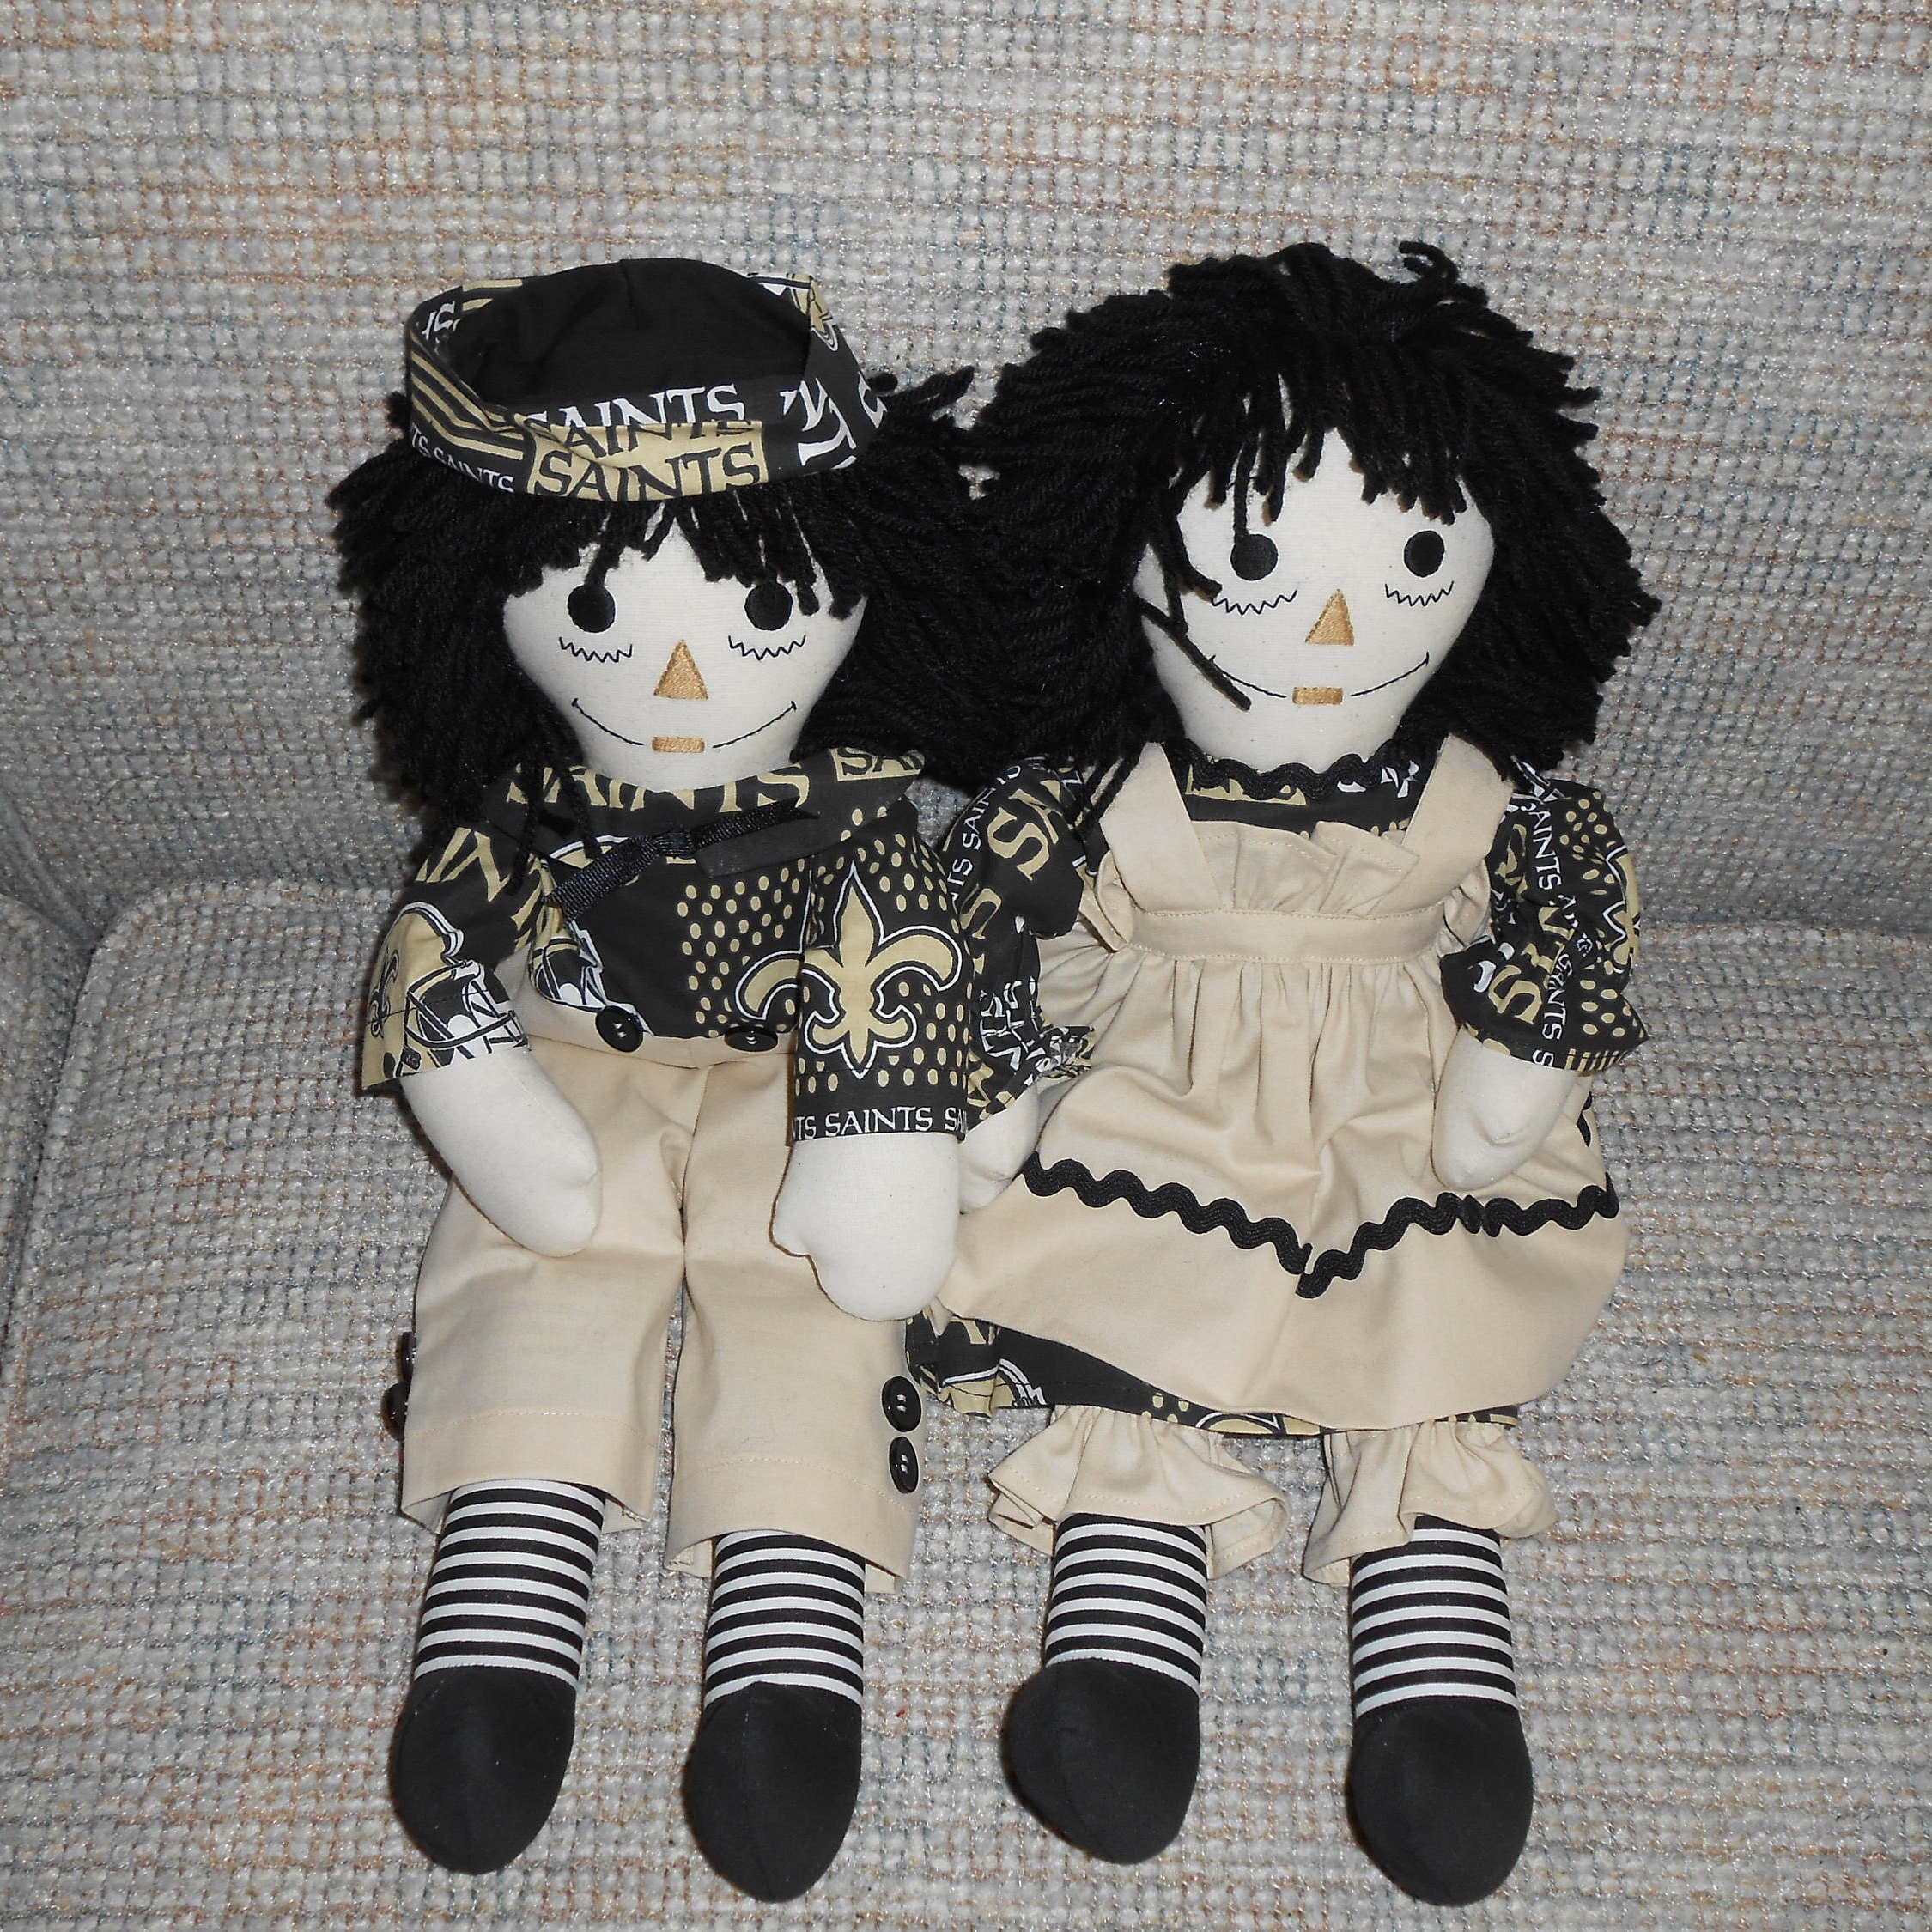 20 inch new orleans saints raggedy ann and andy dolls